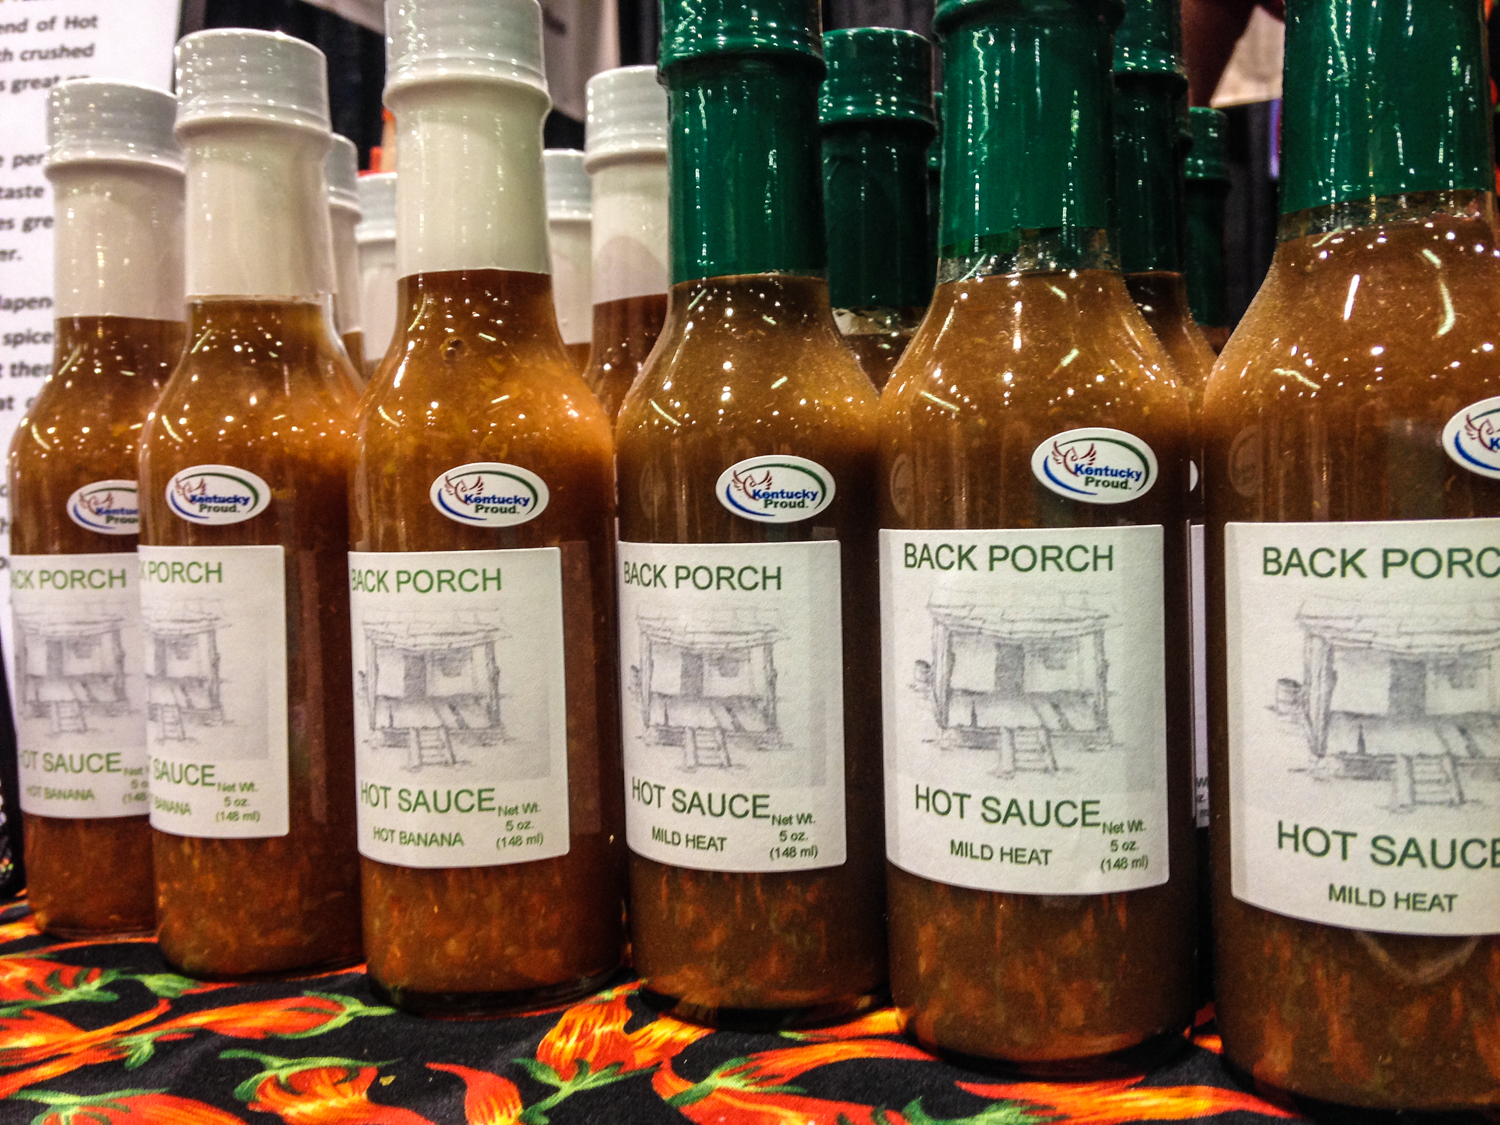 Back Porch Hot Sauce is manufactured and bottled in Winchester, Kentucky.